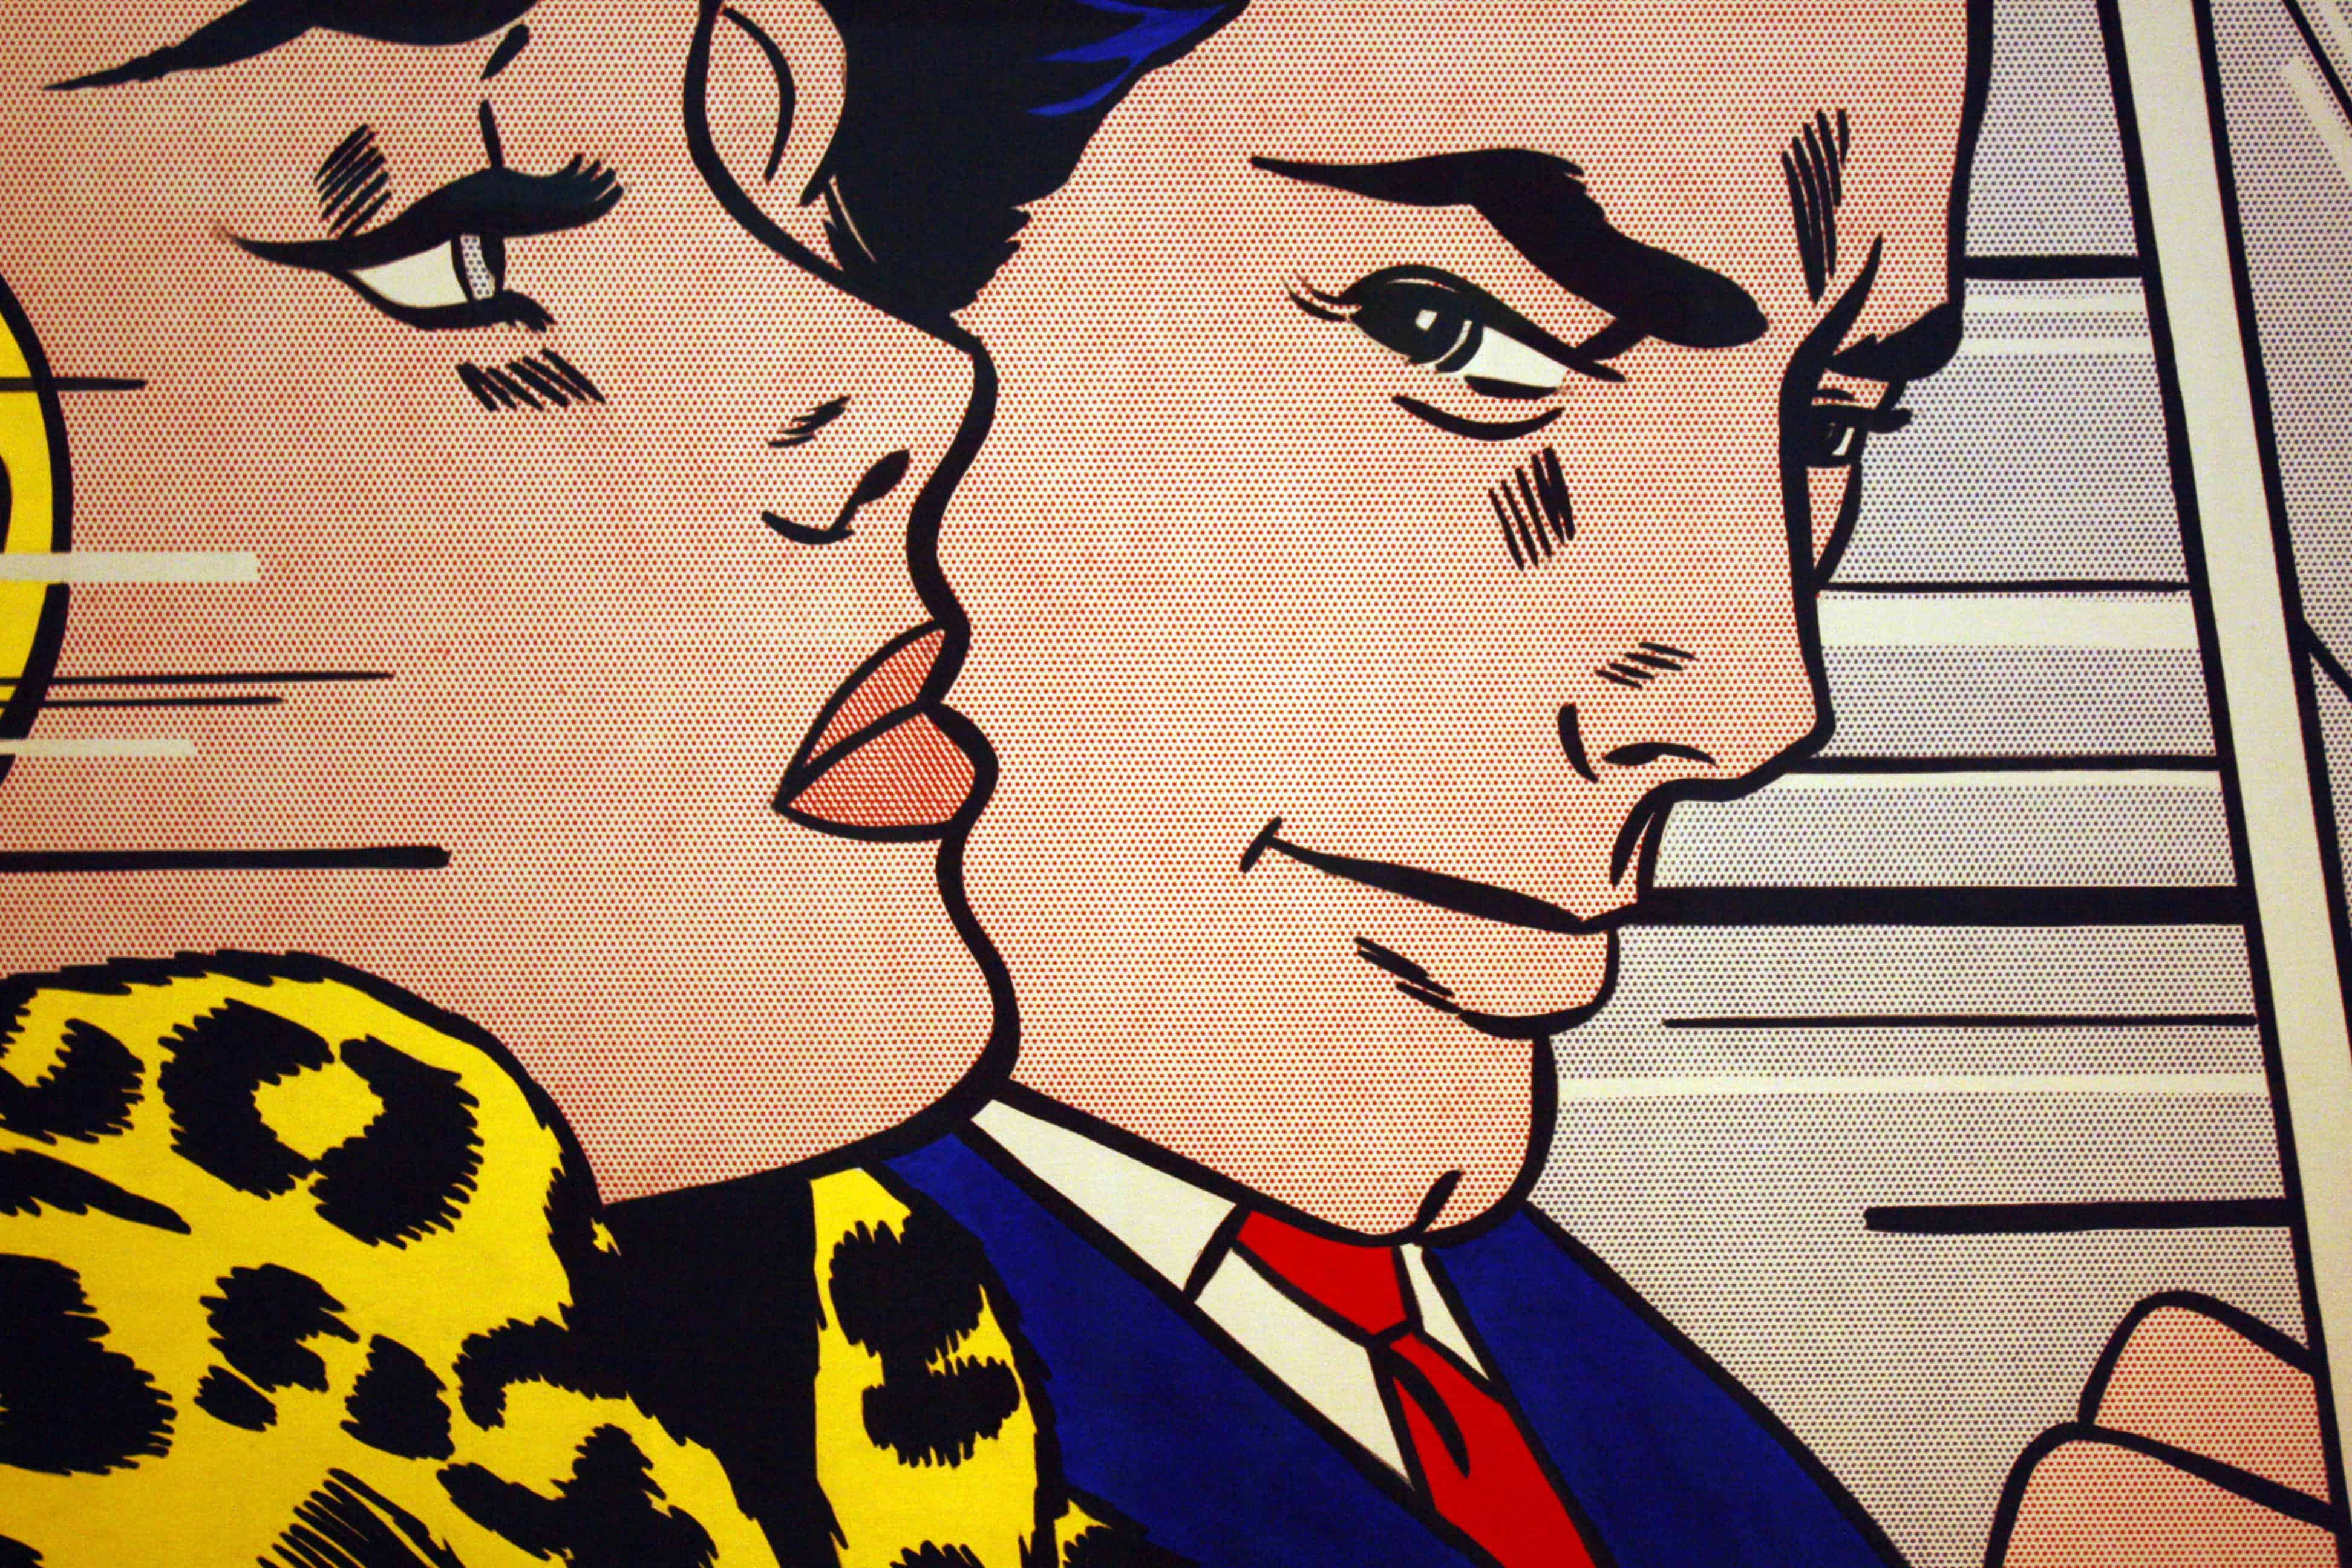 Roy Lichtenstein - In the Car, Tate Liverpool